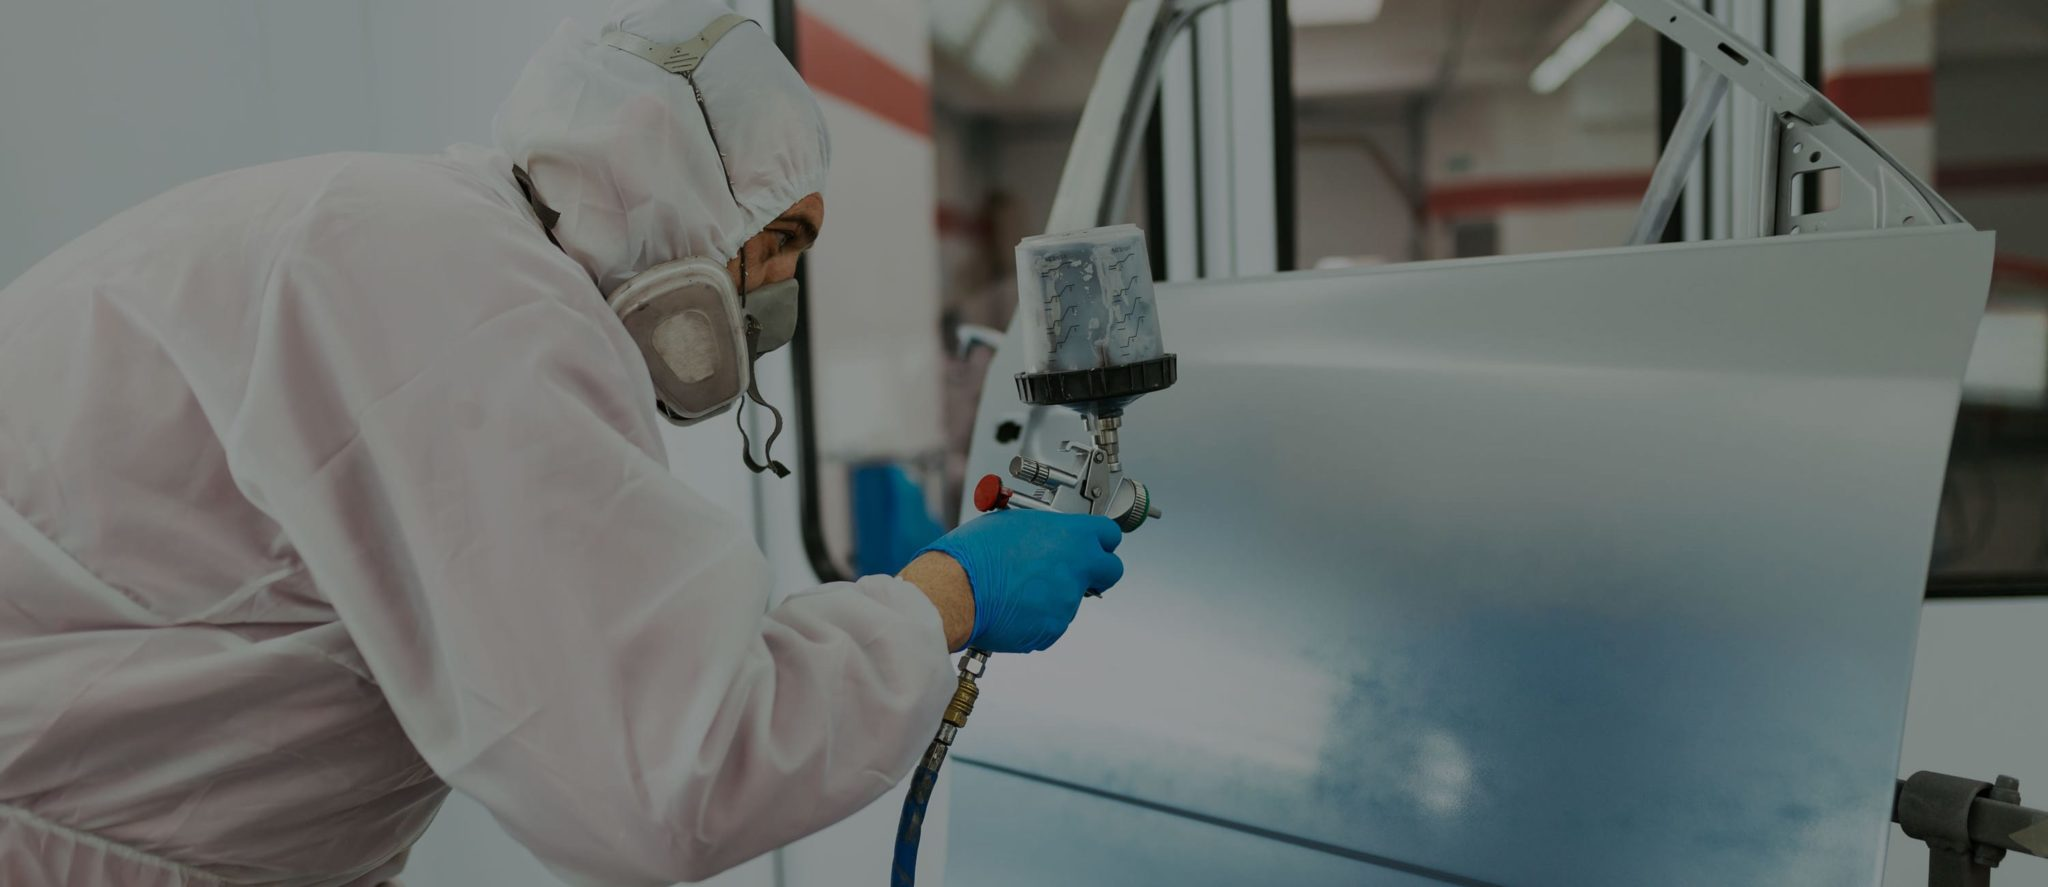 Collision Pros guarantees its collision repair services for the life of your vehicle